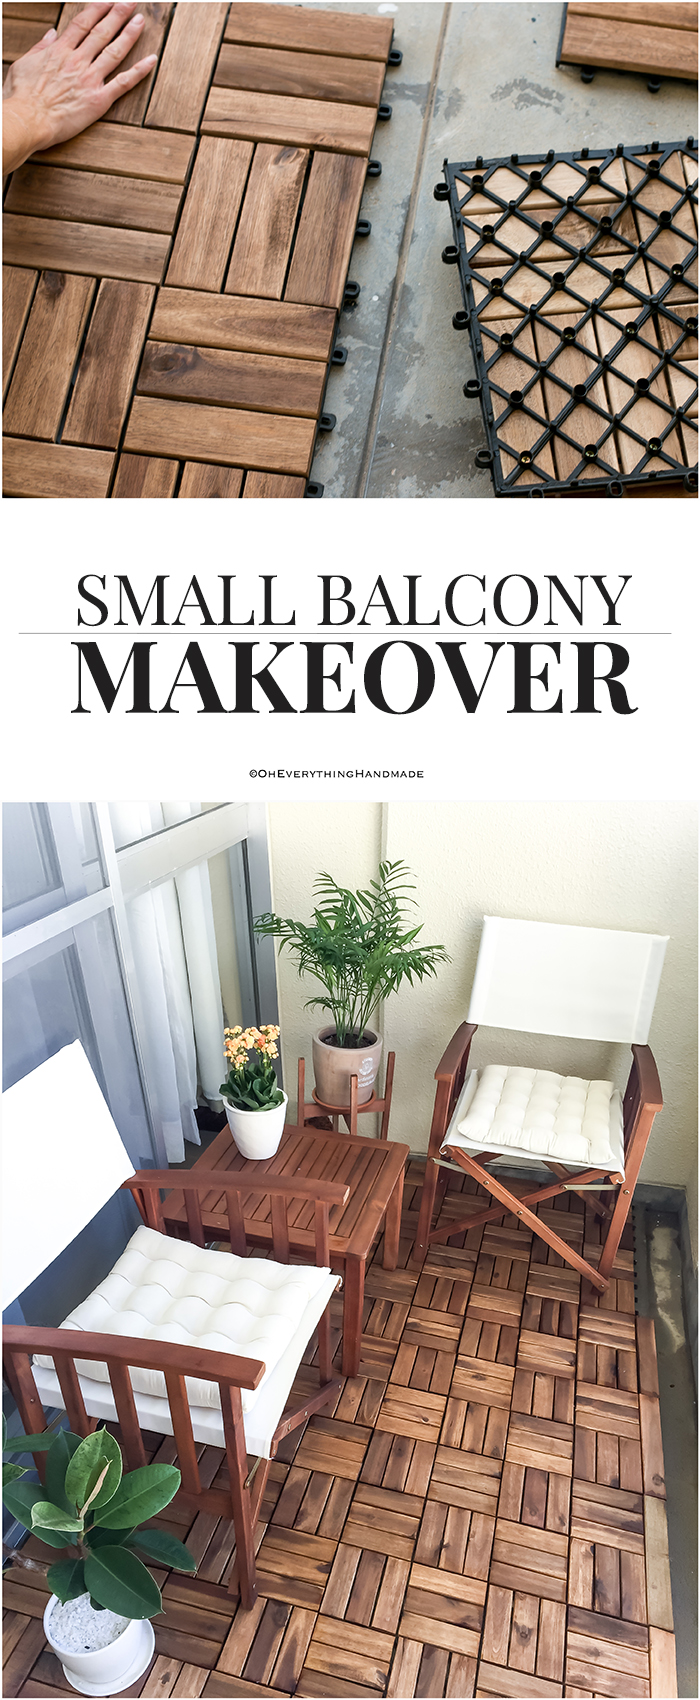 Photo of Small Balcony Makeover | DIY Crafts and Projects Ideas | Handmade